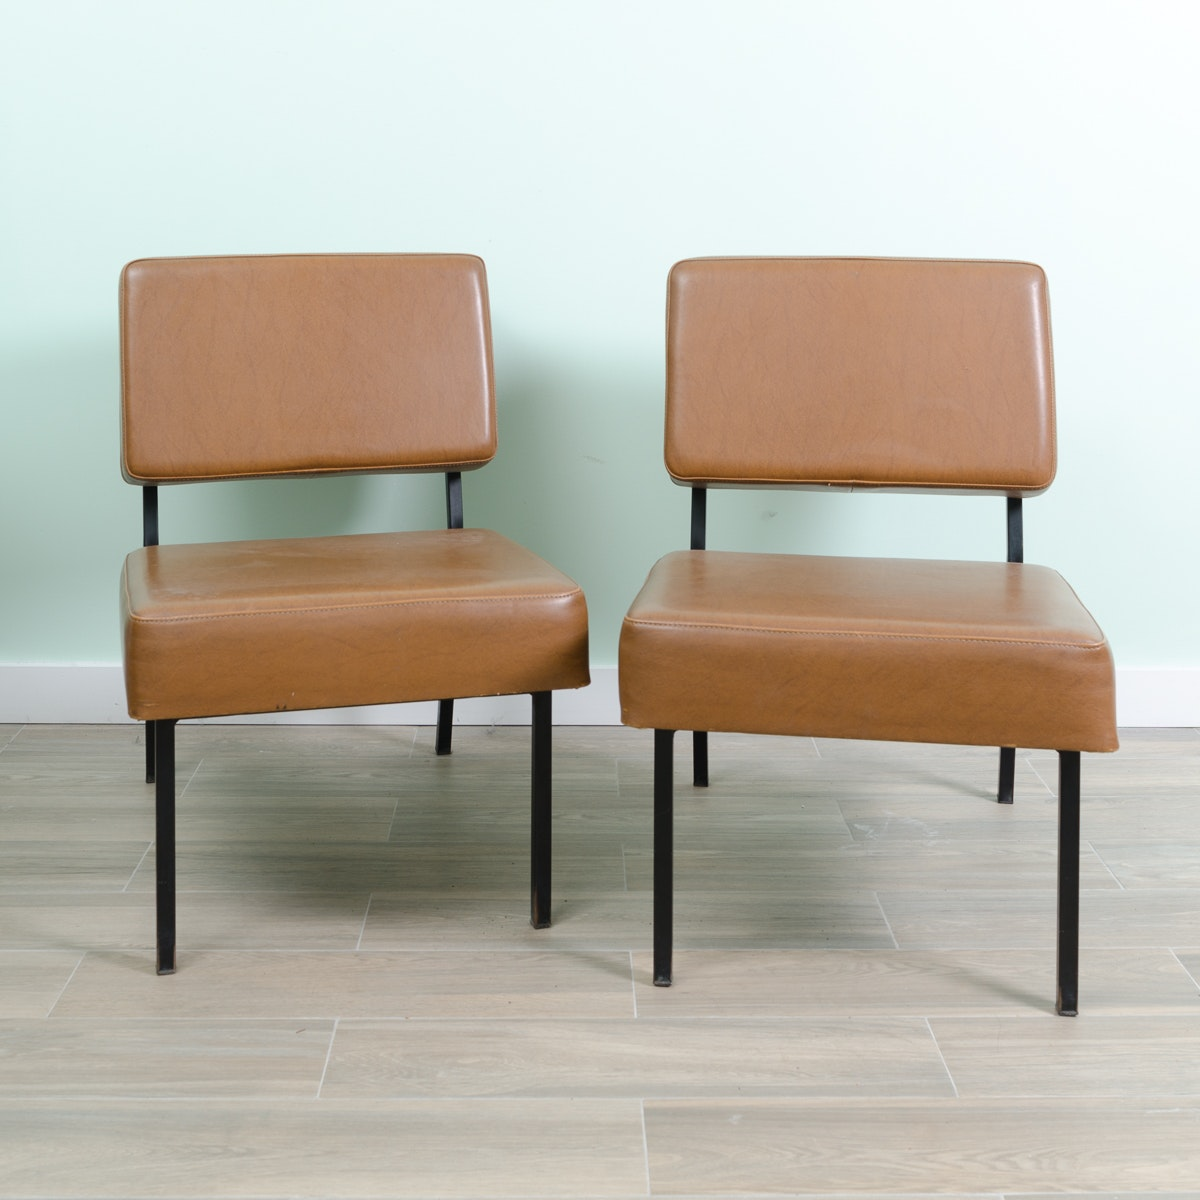 Pair of Mid Century Modern Accent Chairs